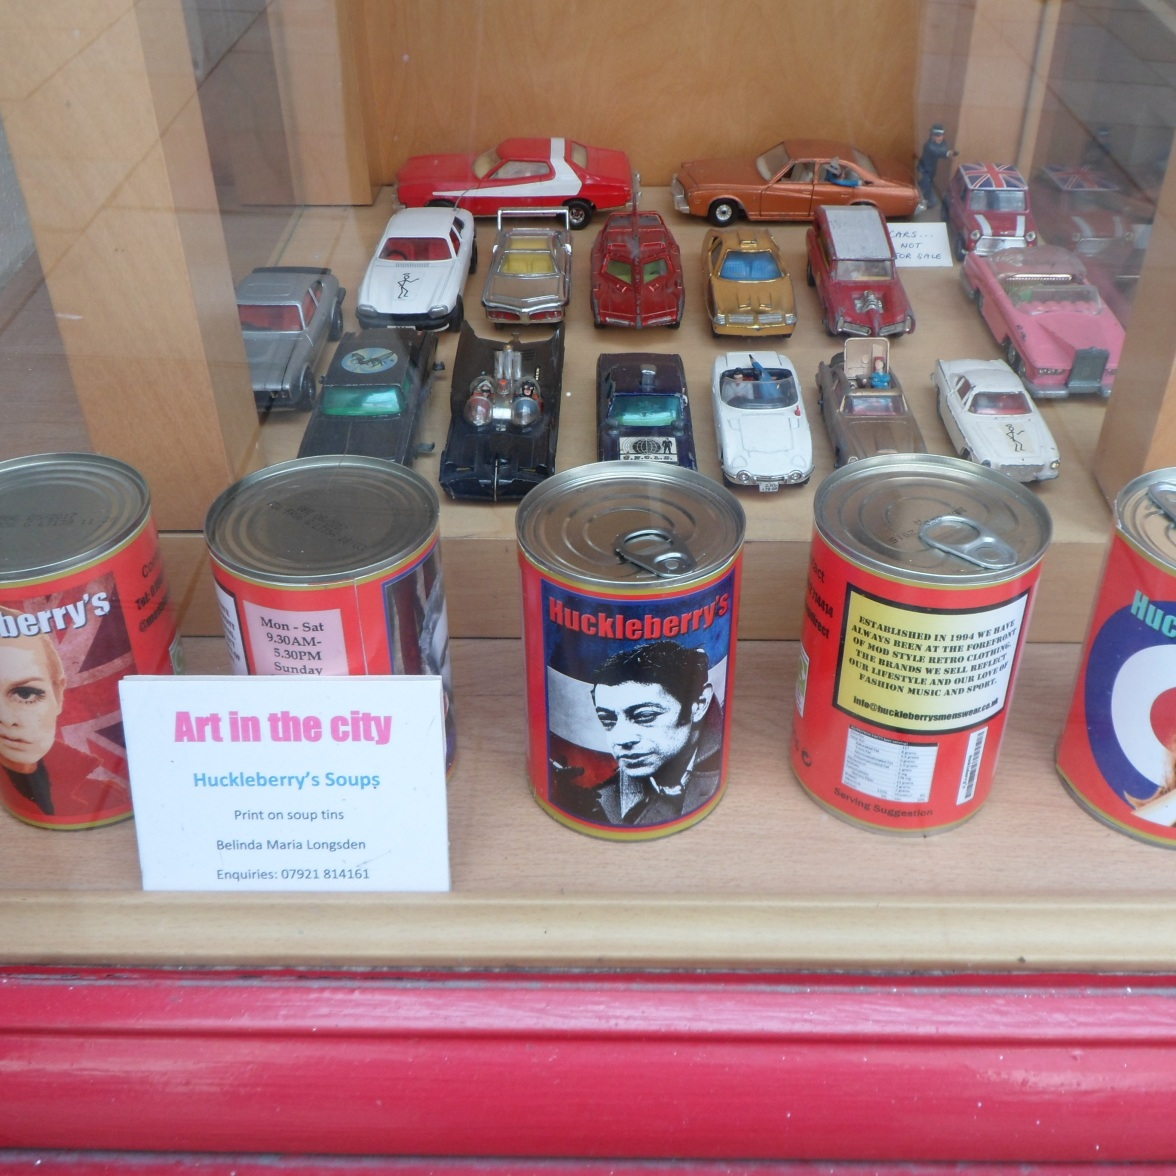 Soups on display at Huckleberrys menswear